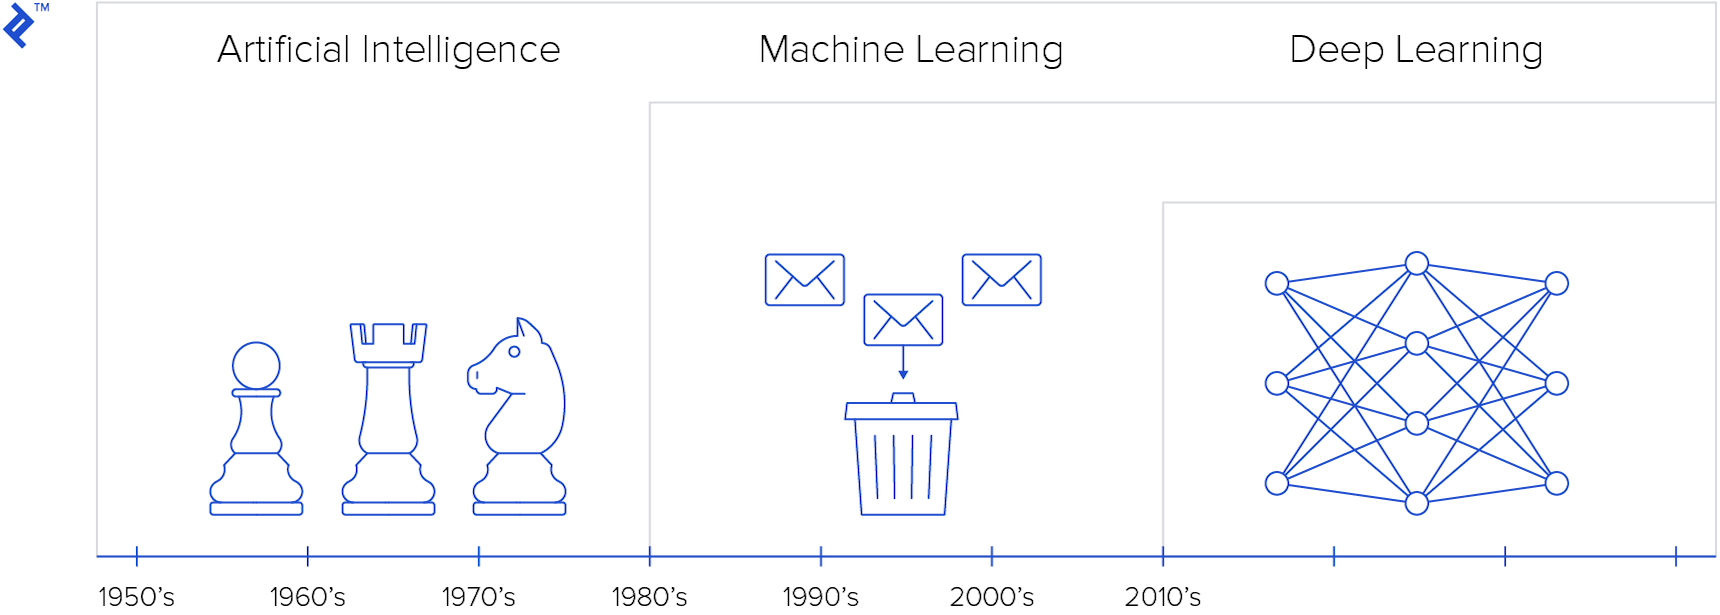 The progression of AI, machine learning, and deep learning